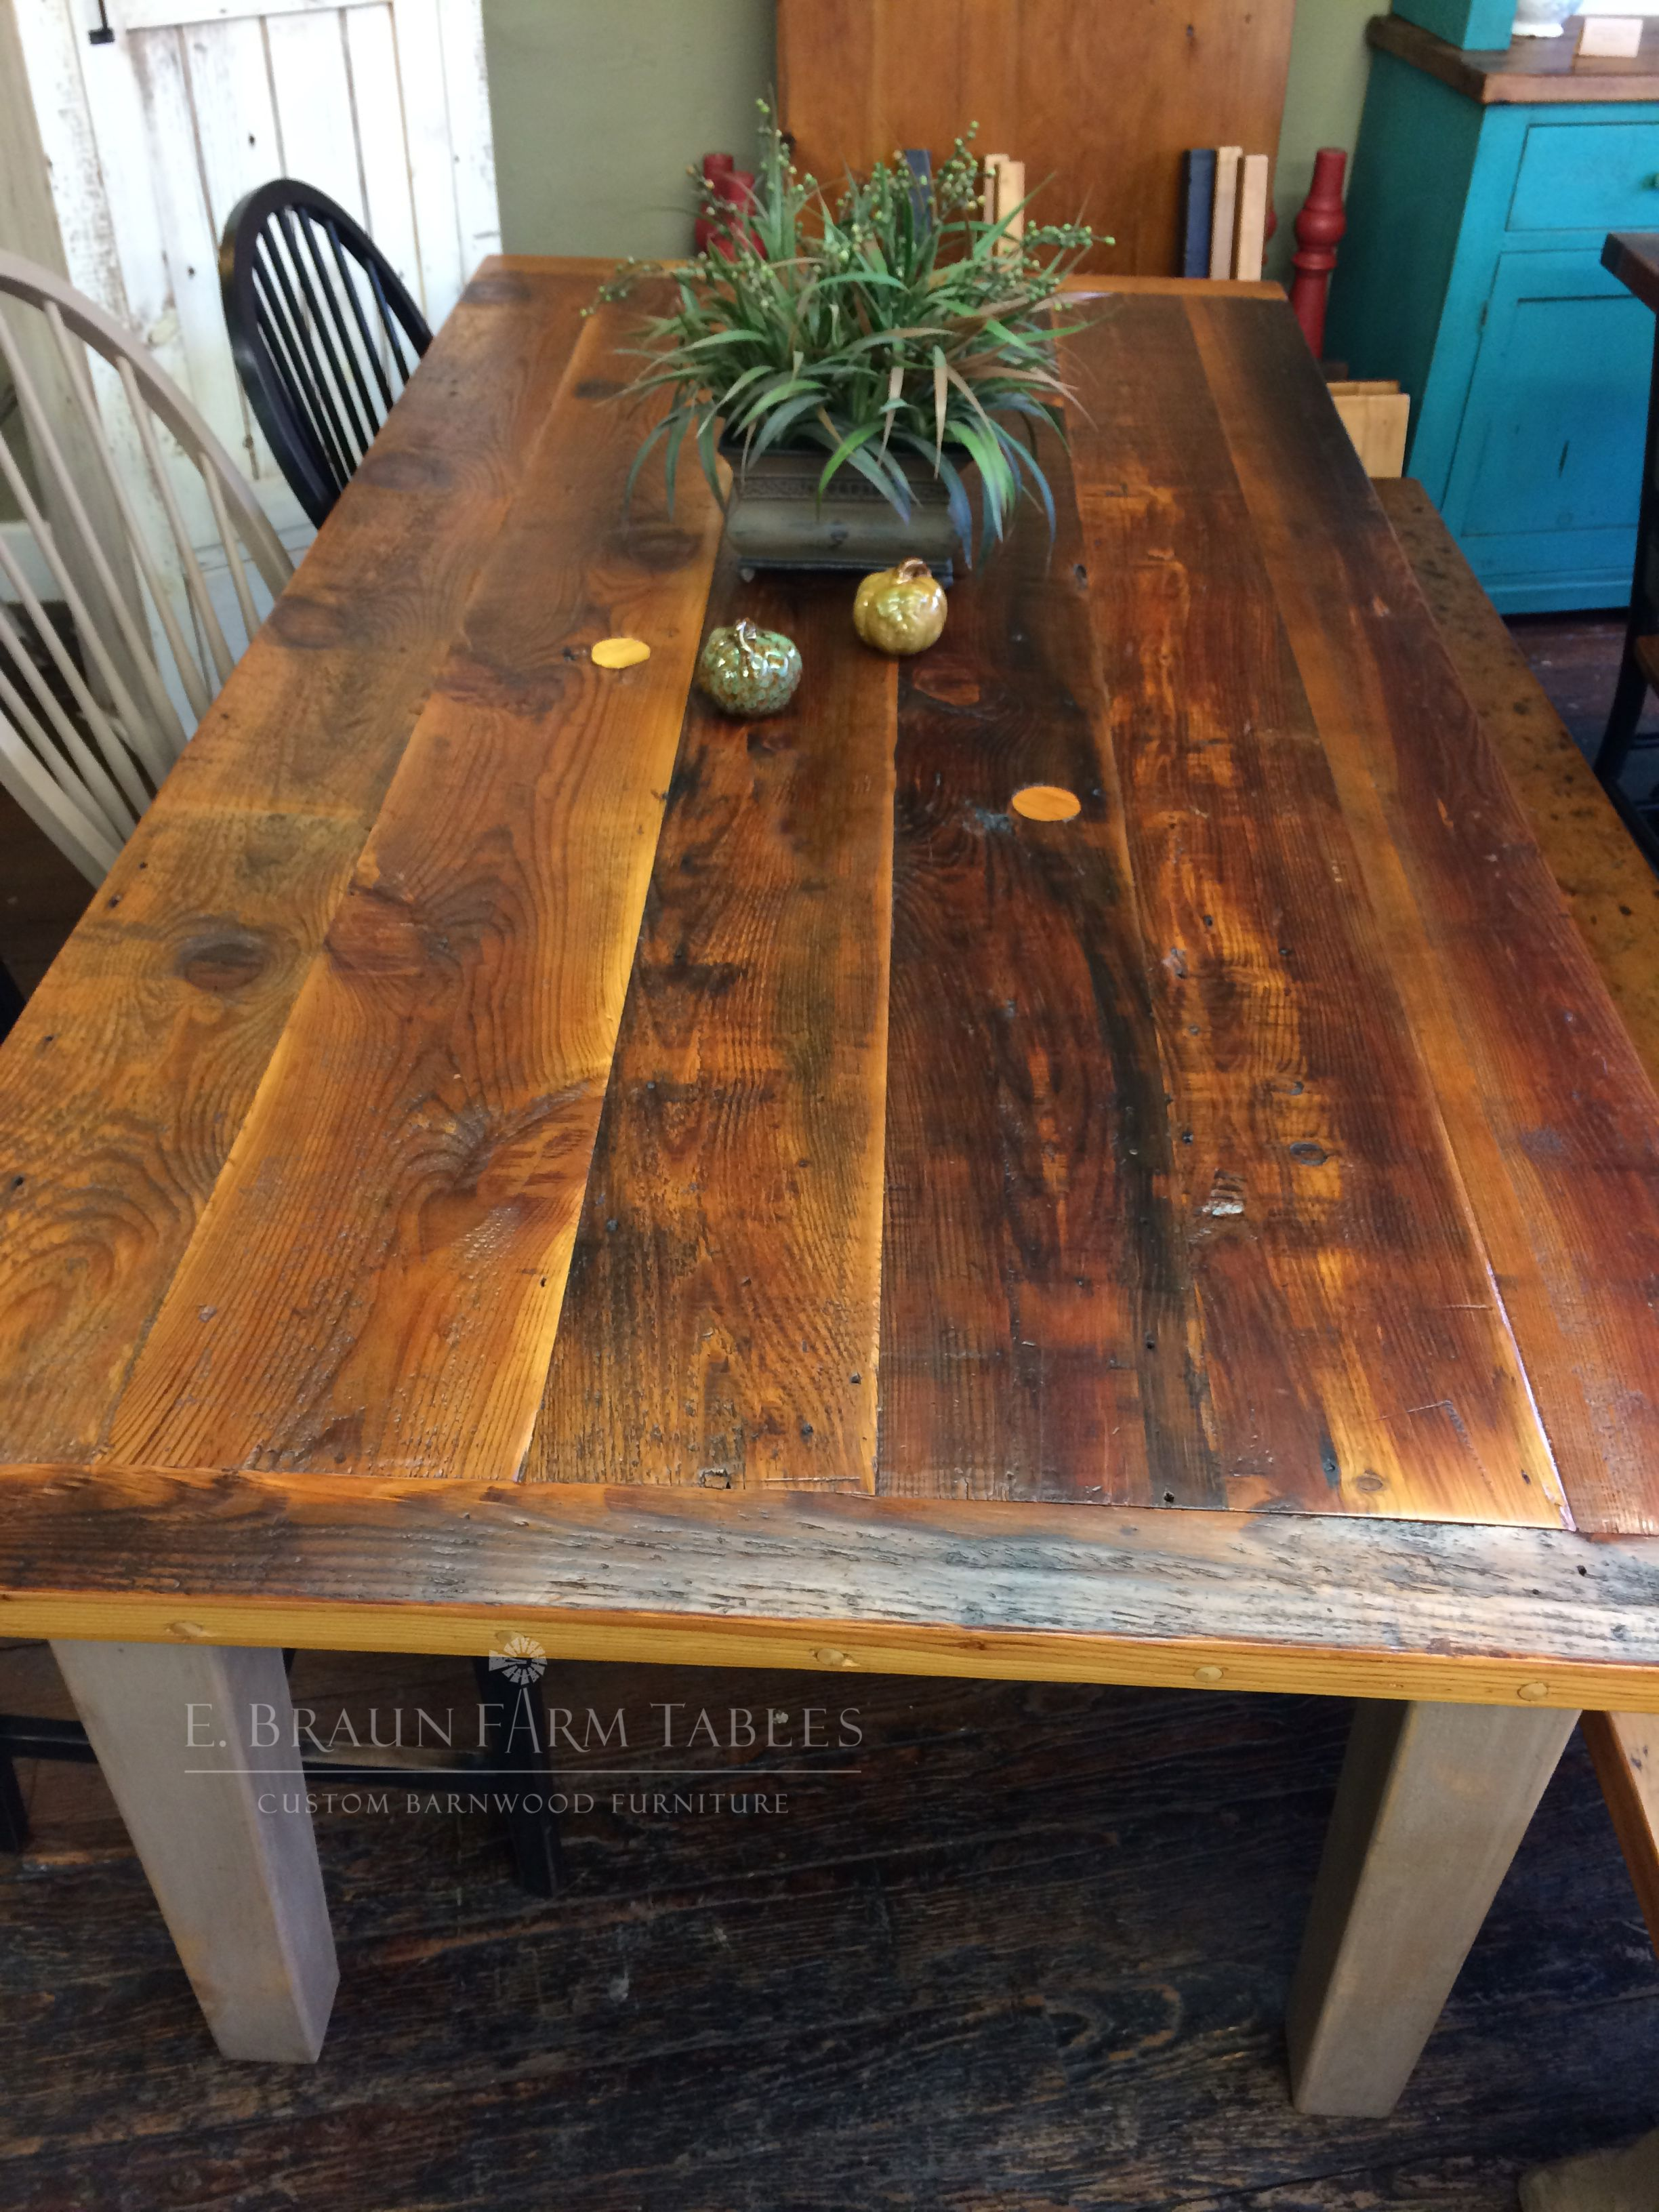 Mixed Patina Boards Were Chosen To Give This Reclaimed Barn